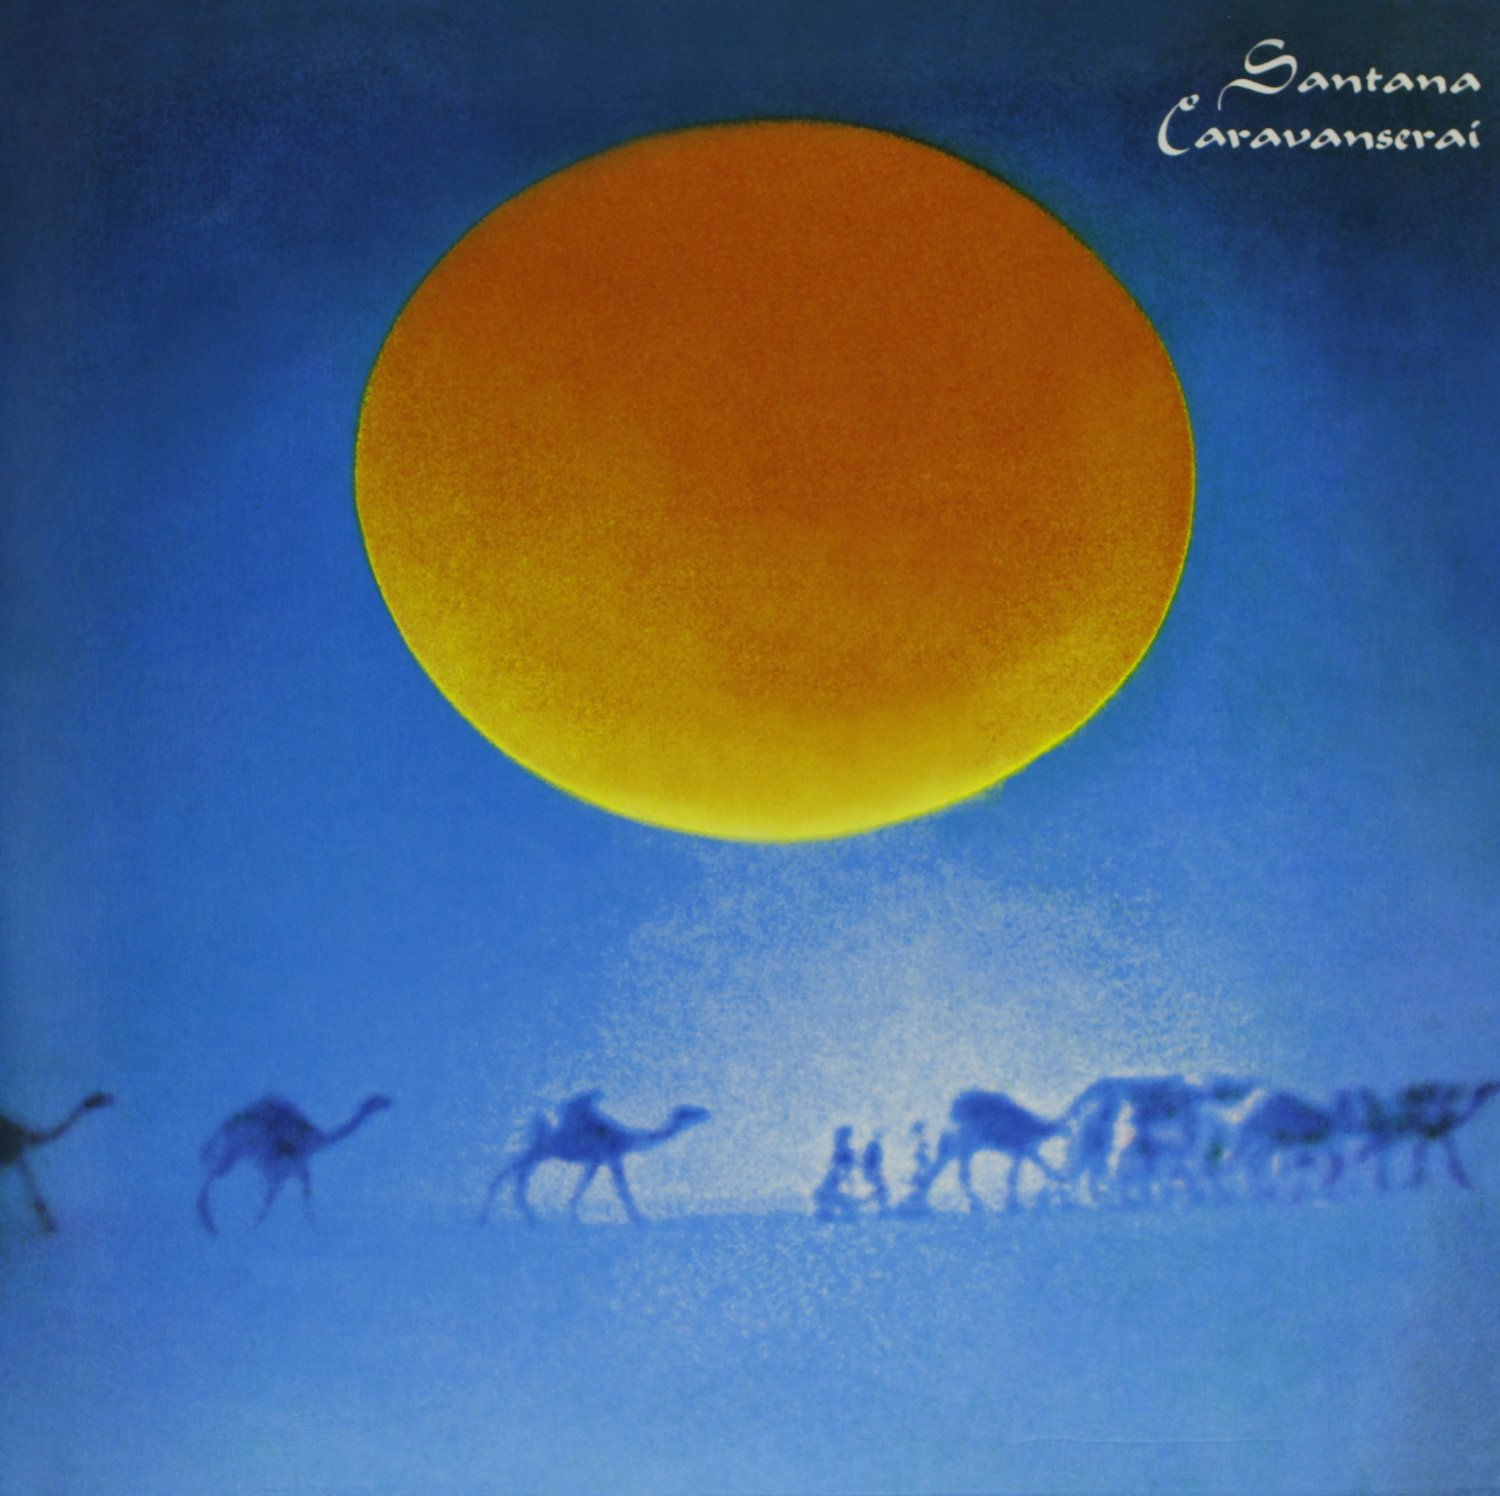 Brilliant Columbia Studios, San Francisco, CA MarchMay 1972 Good Soundboards Several Versions Of Santanas Caravanserai Outtakesrehearsals Have Been Shared Among Fans Over The Years And Here Are Two Of Them Disc 1 Here